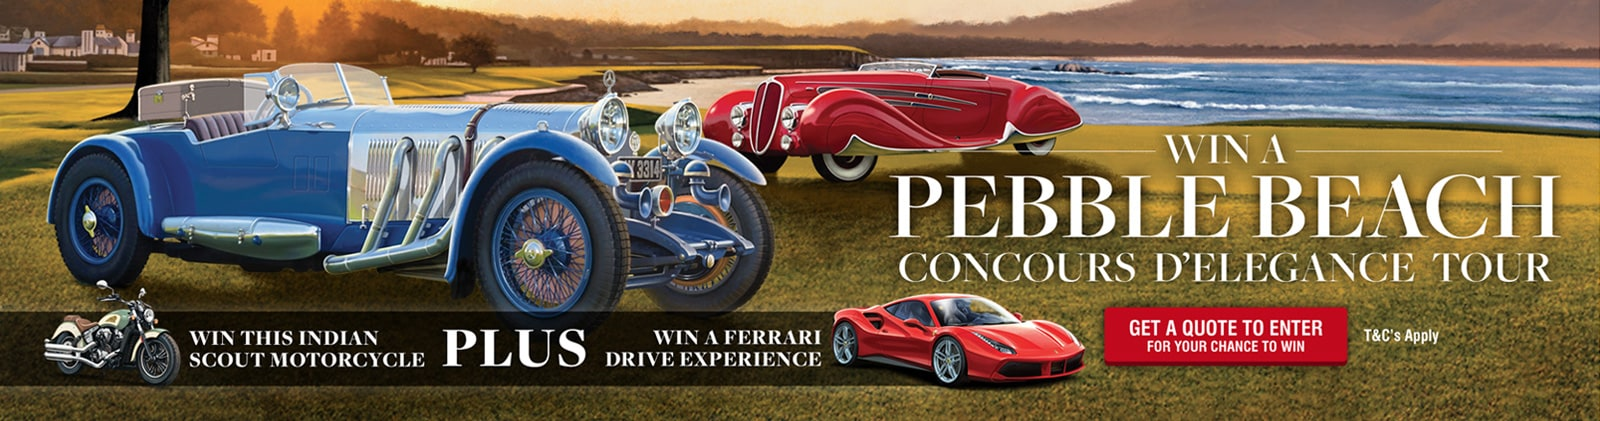 Win a Goodwood Revival UK Tour Plus a 2018 Indian Scout Bobber Motorcycle